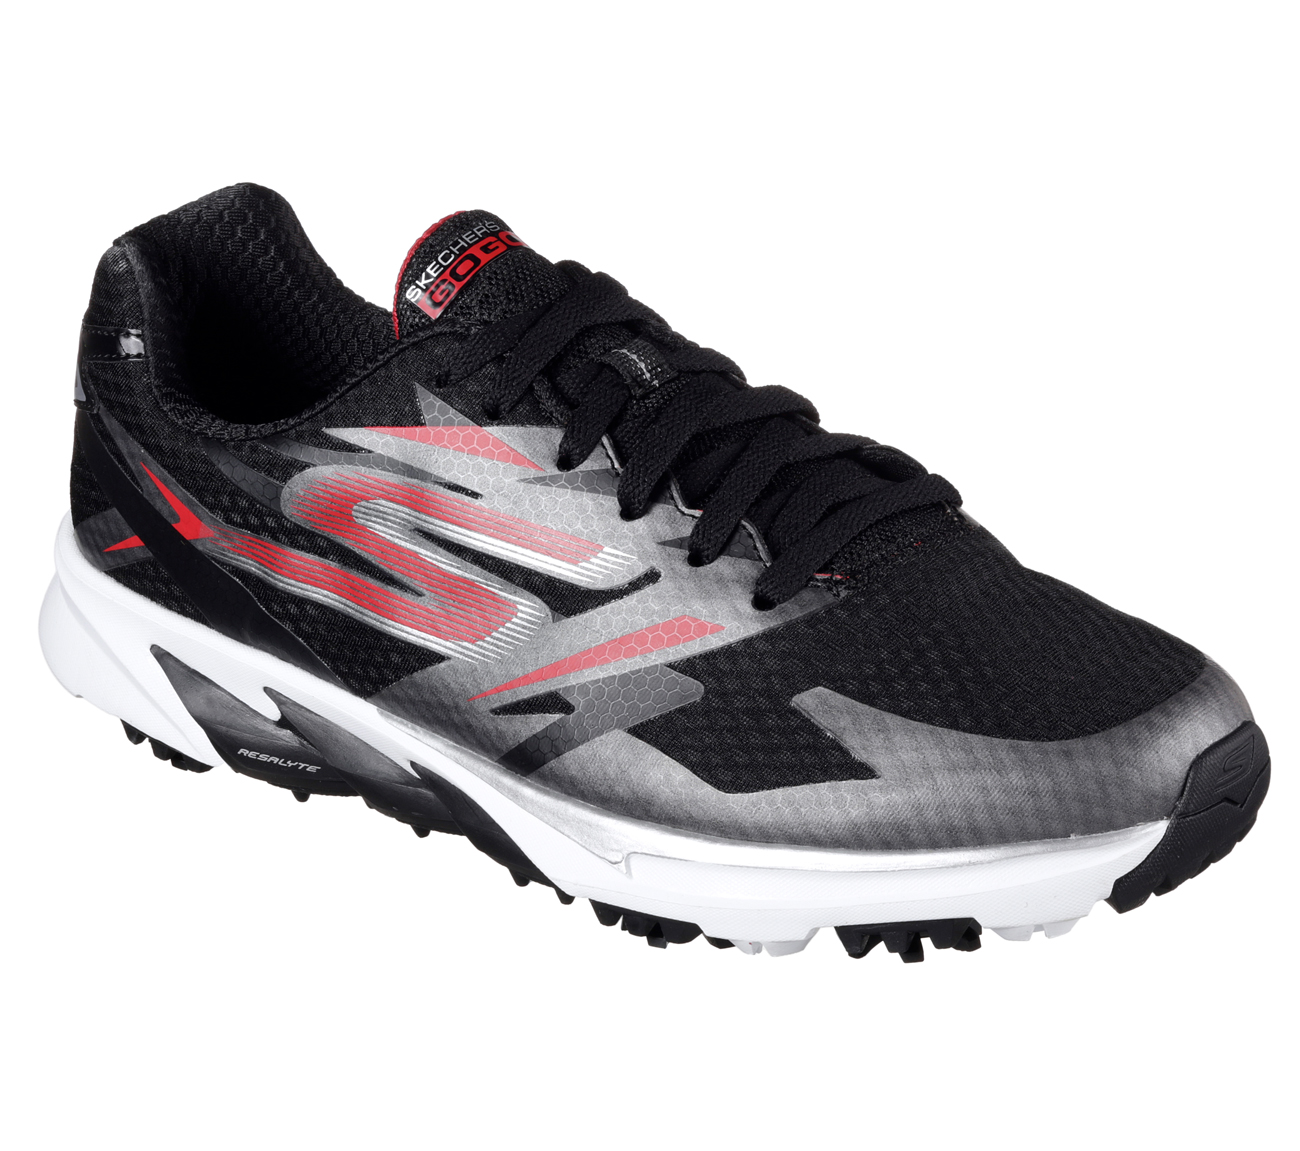 Sketchers Men's Go Golf Blade Power Golf Shoe - Black/Red